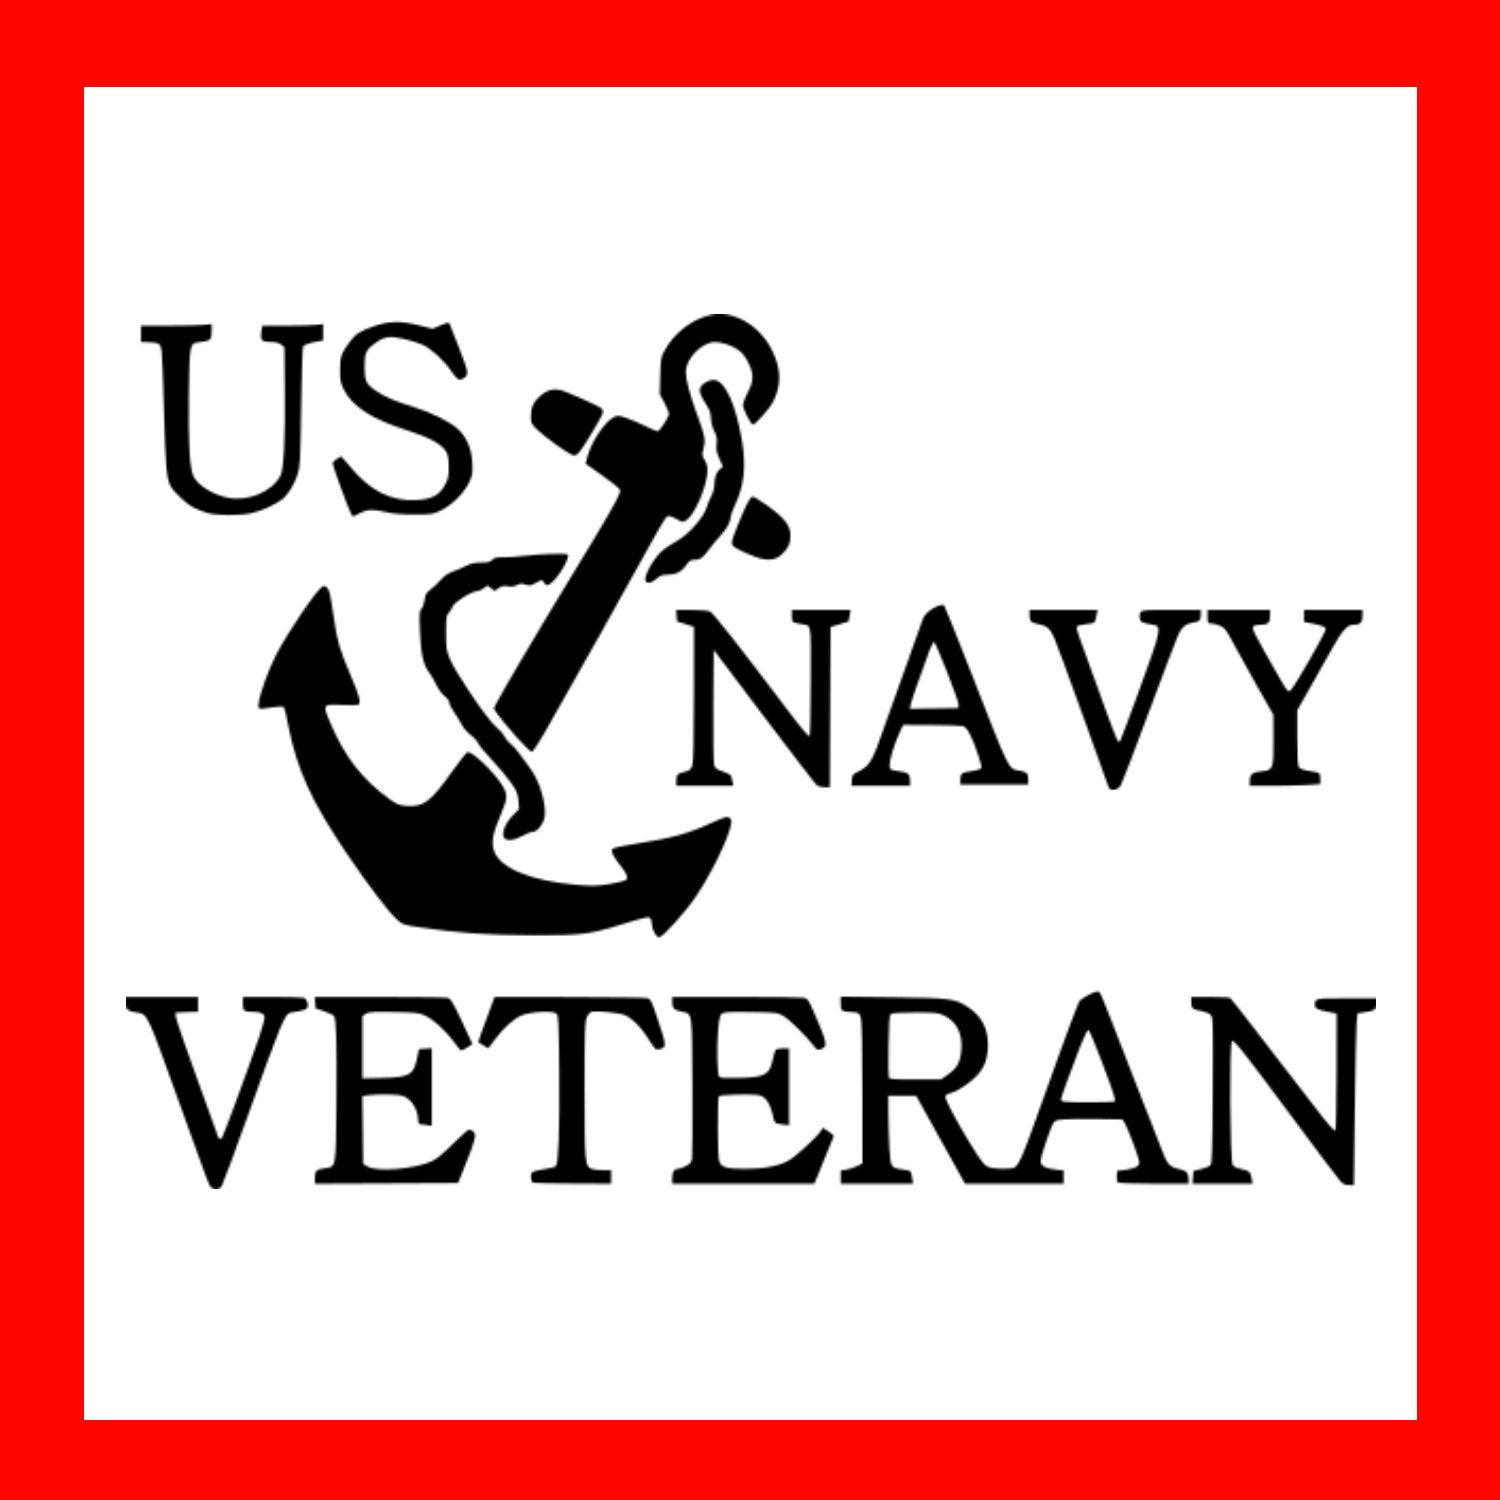 Navy svg file us navy svg navy cut file navy dxf file